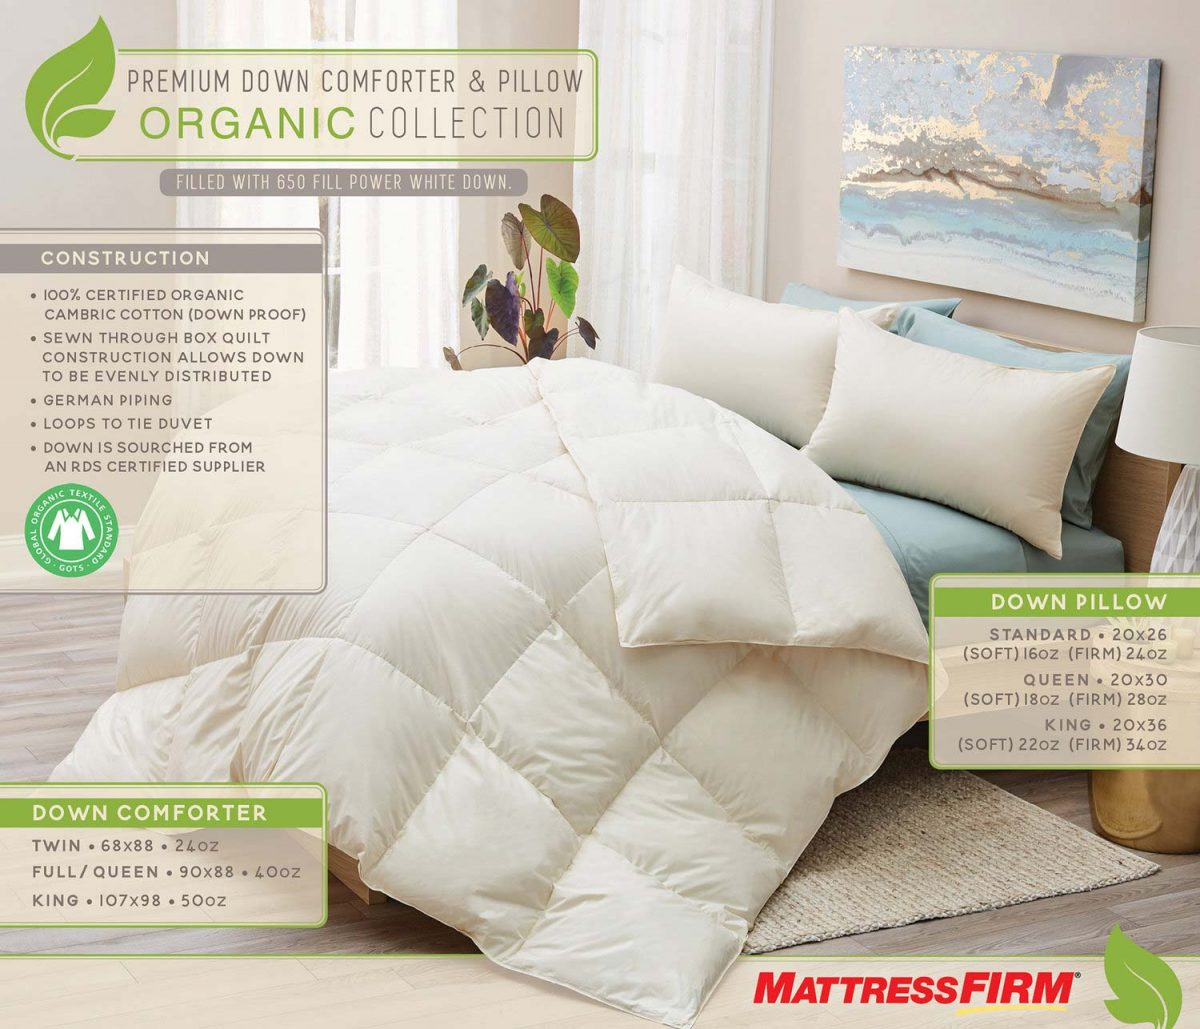 Mattress Firm Organic Collection Tear Sheet by Salt Paper Studio of Charlotte, NC